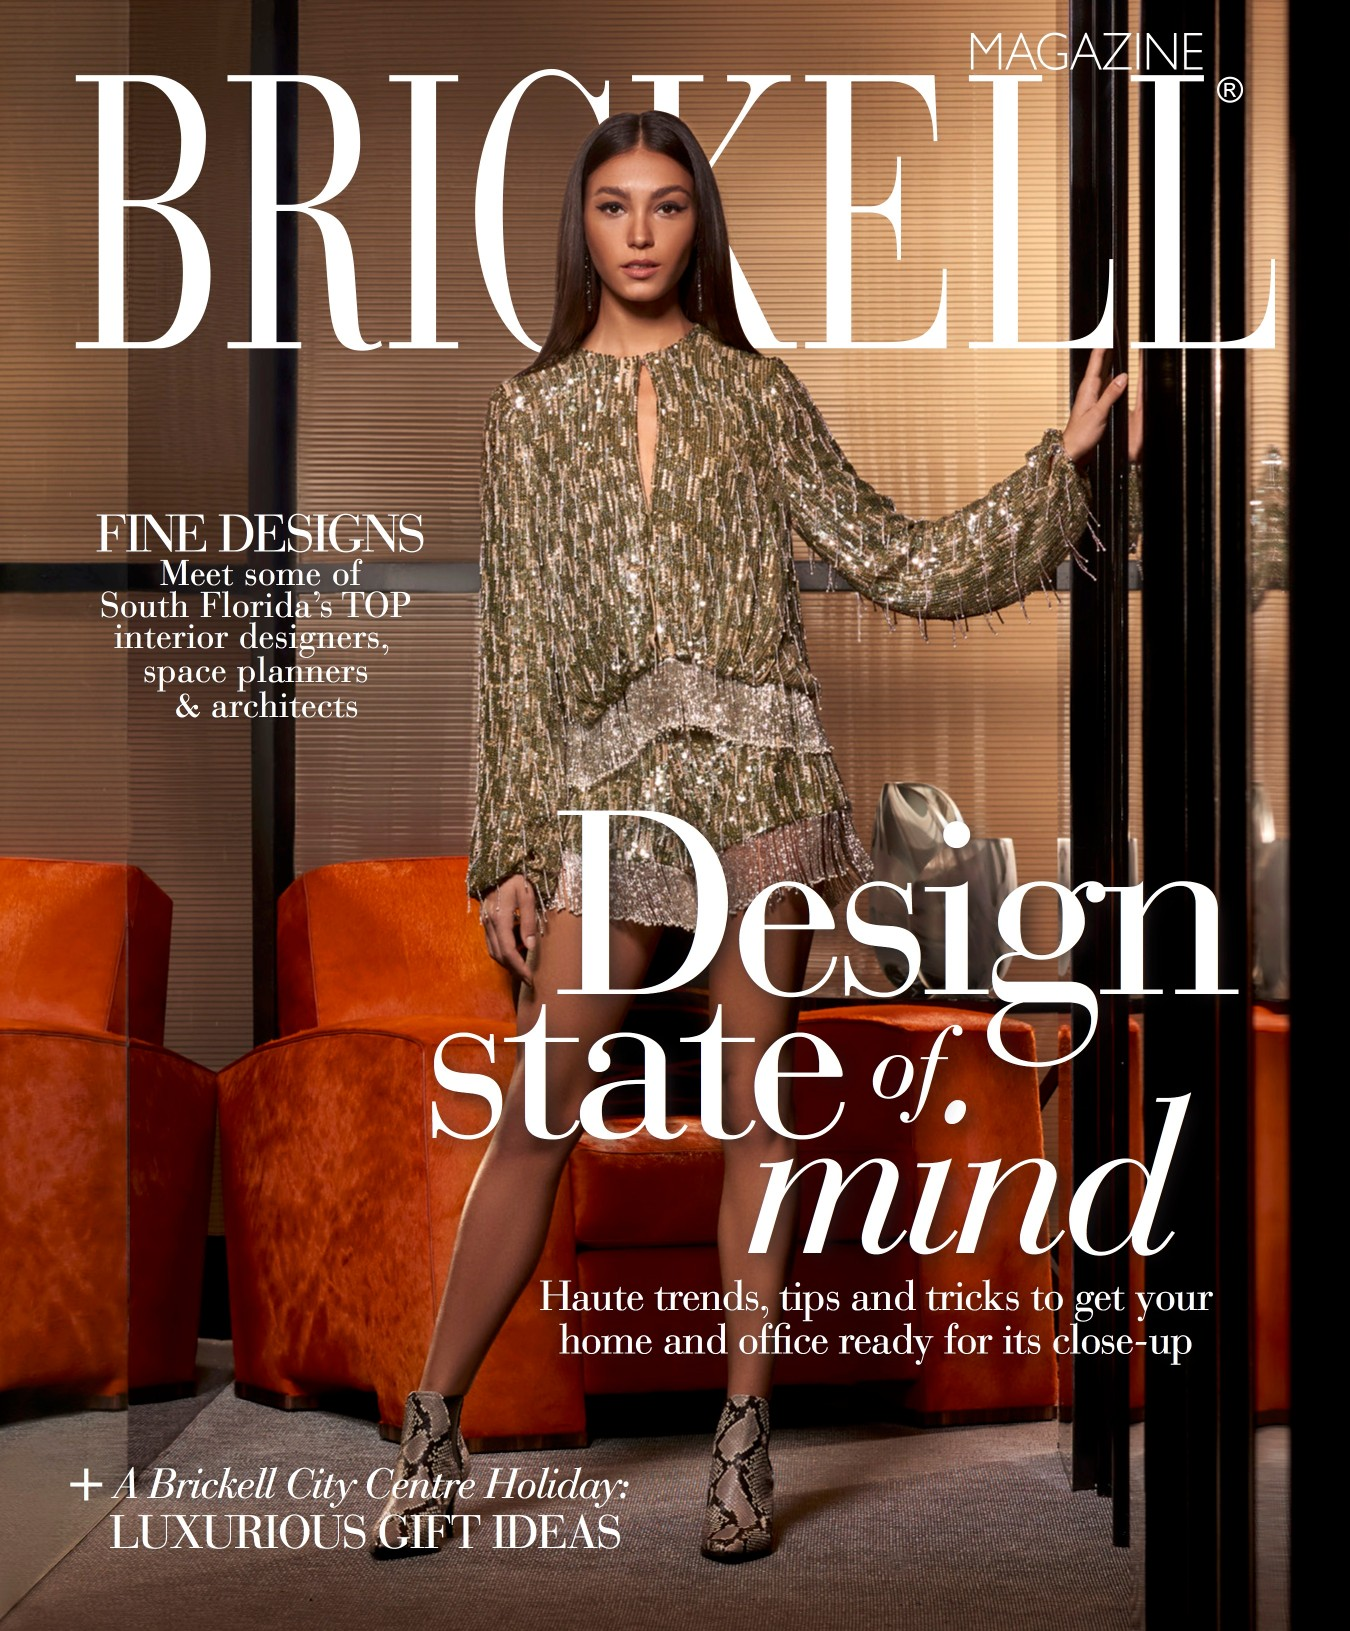 Brickell Magazine 2018